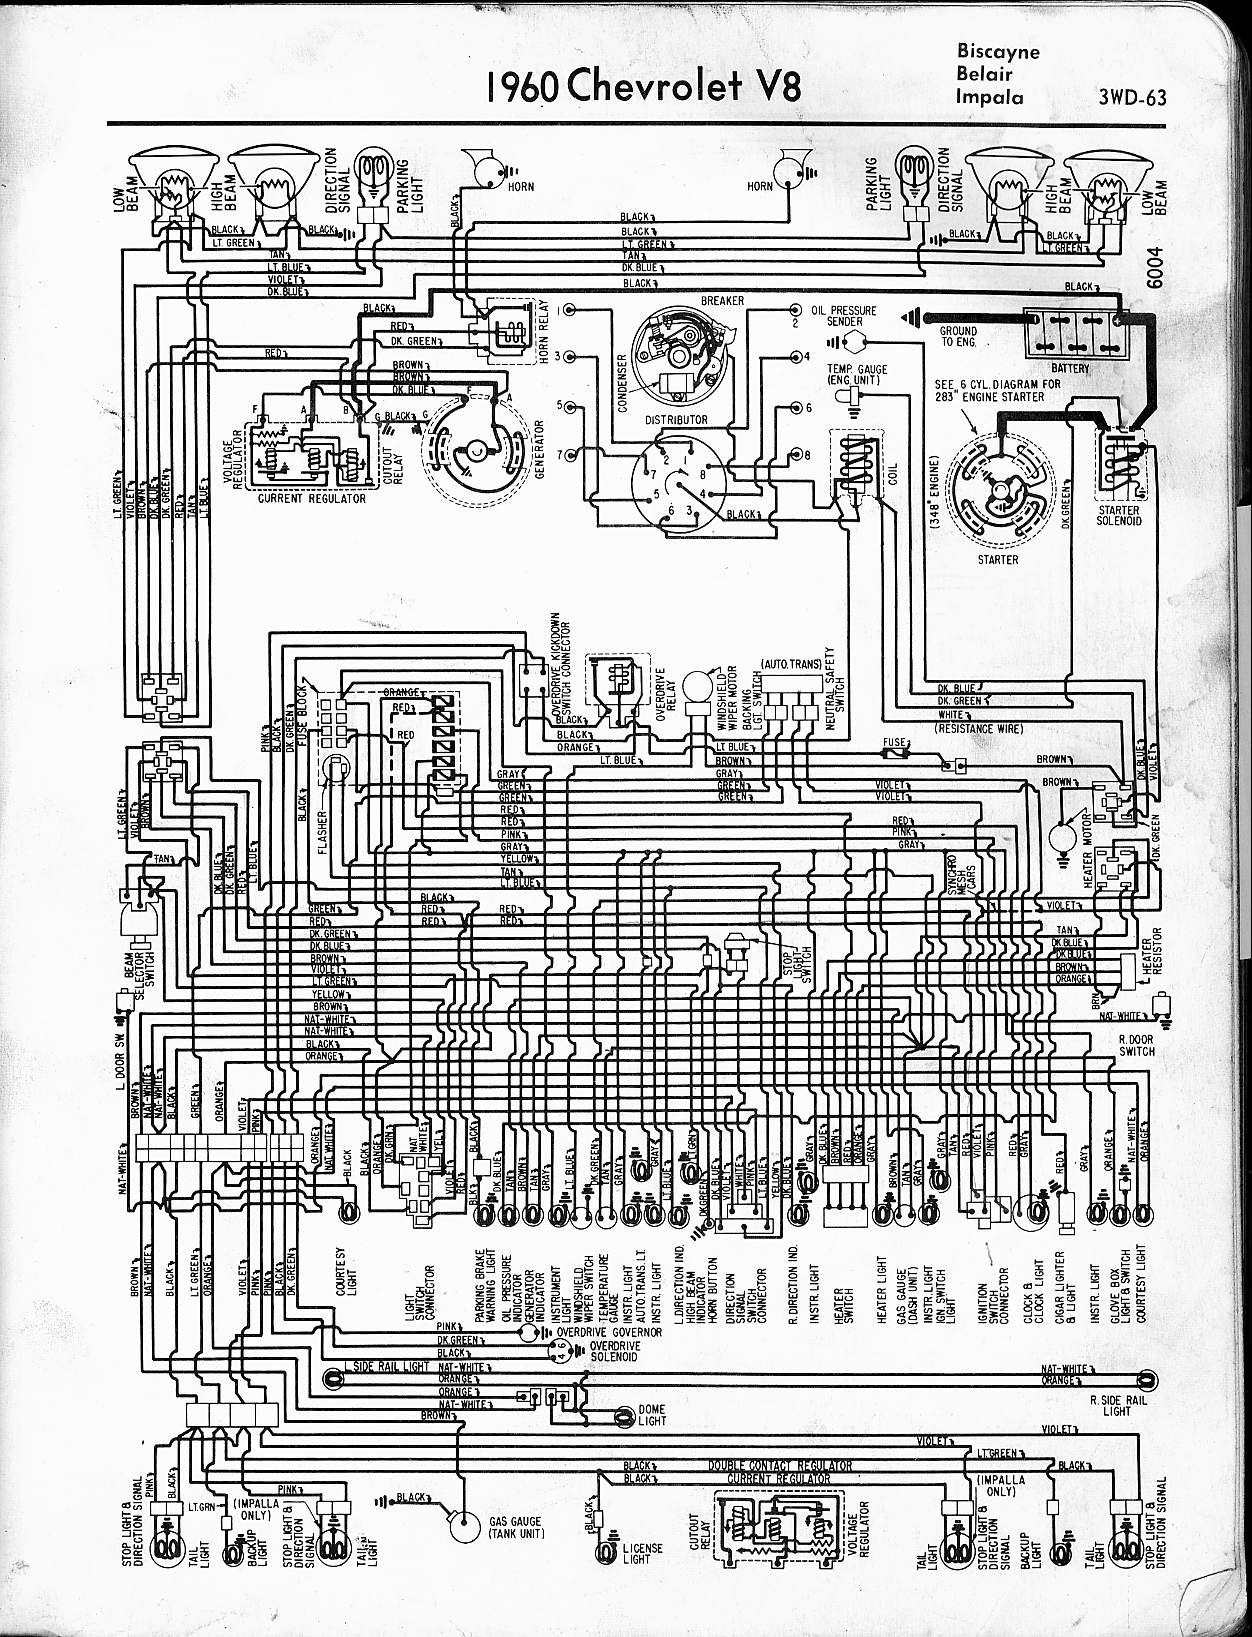 2007 Impala Engine Schematics Wiring Library 2003 Chevrolet Diagram 1960 Diagrams V8 And L6 Engines Rh 60impala Com Chevy